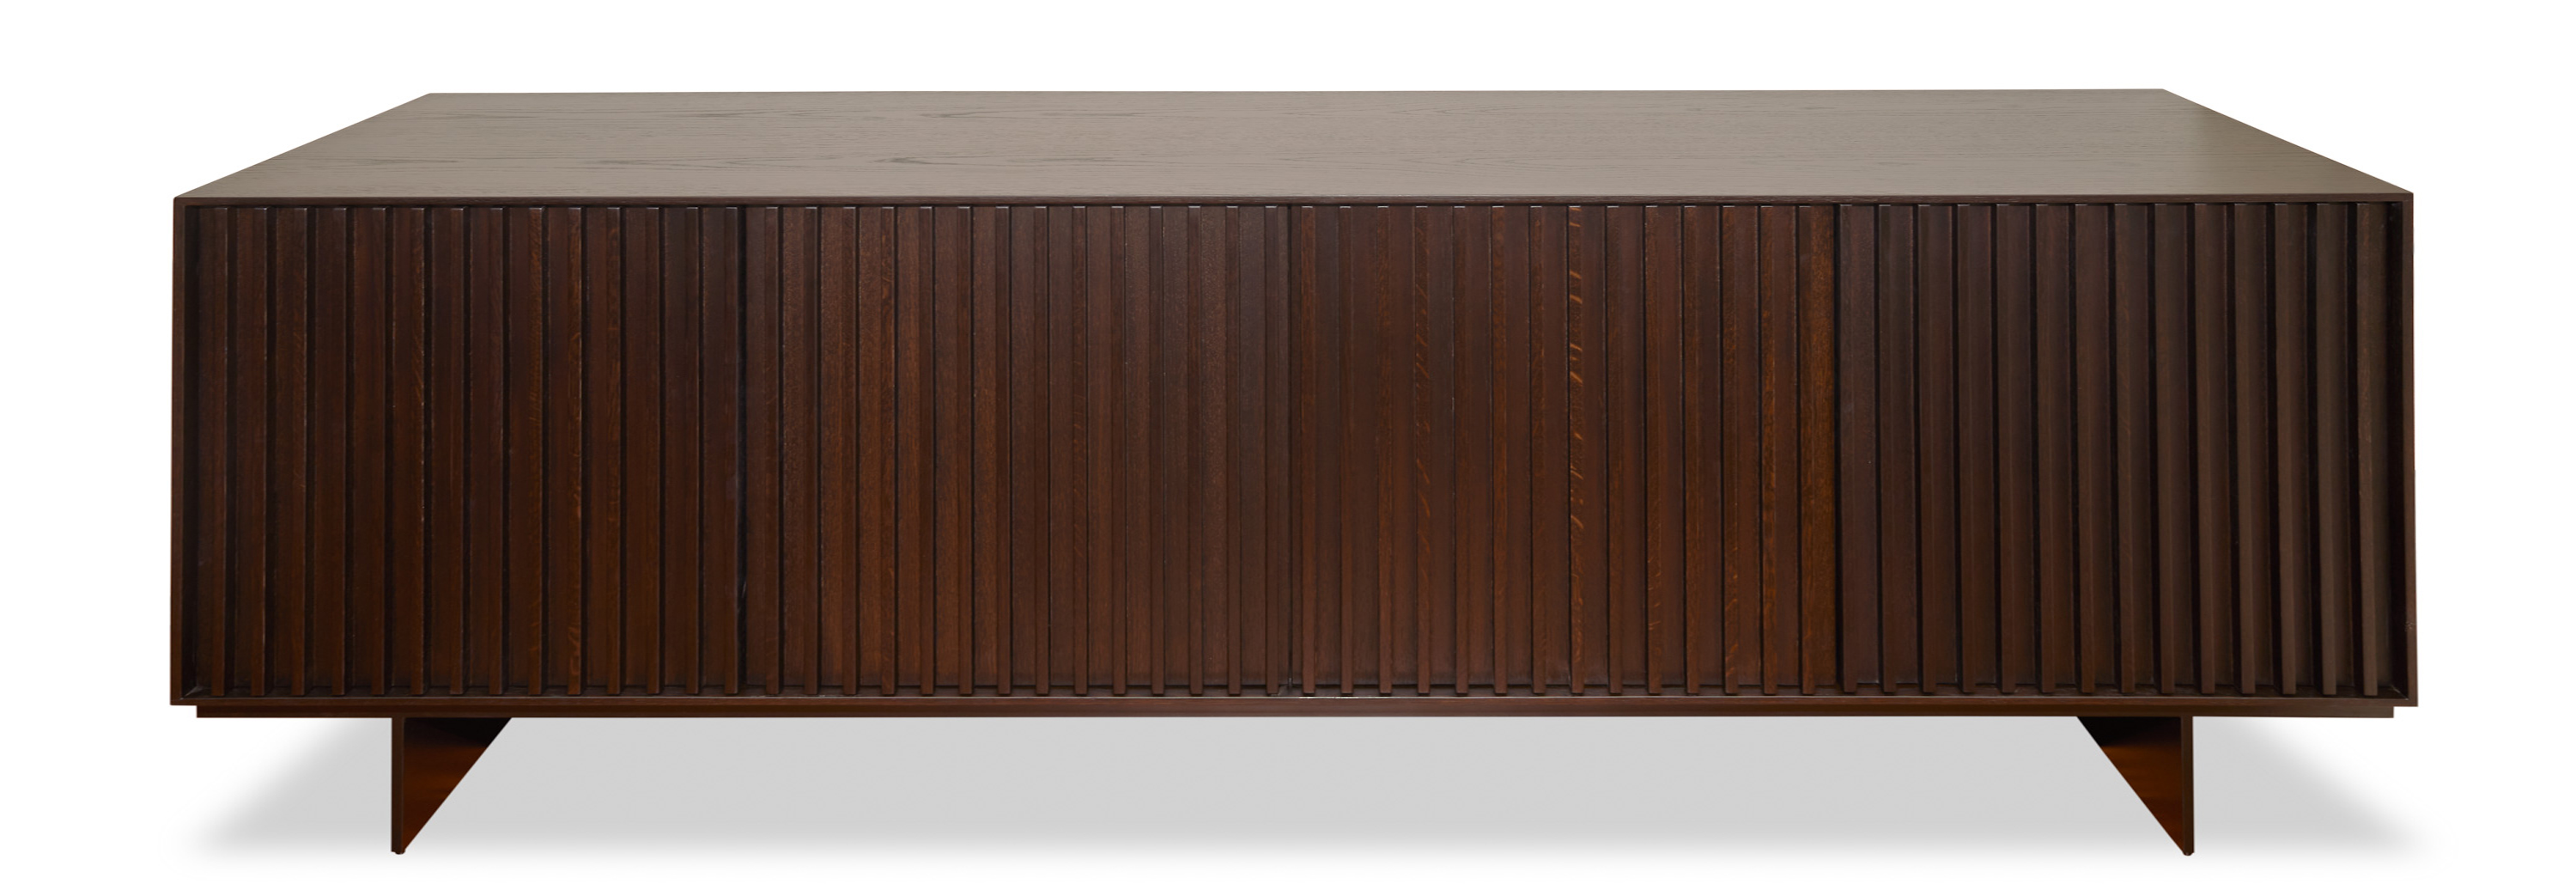 Our artisan team thrives on creating beautiful finishes and well-constructed pieces that defy their elegant appearance. This sleek sideboard features linear ashwood detailing on the doors complimented by sturdy slim metal legs.